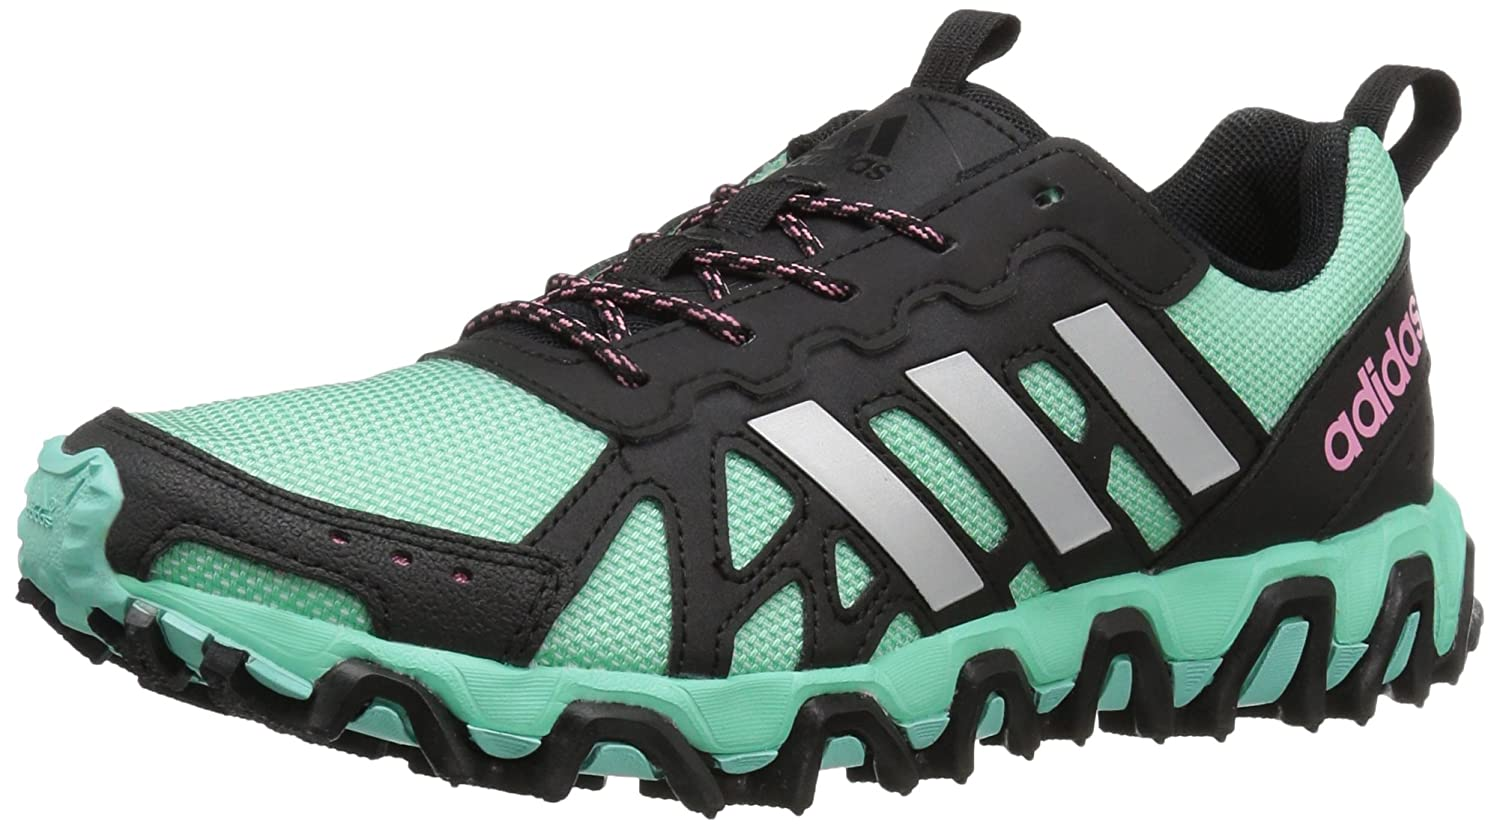 adidas Performance Women's Incision W Trail Runner B01H7Z5J7Y 11 B(M) US|Black/Metallic/Silver/Easy Green